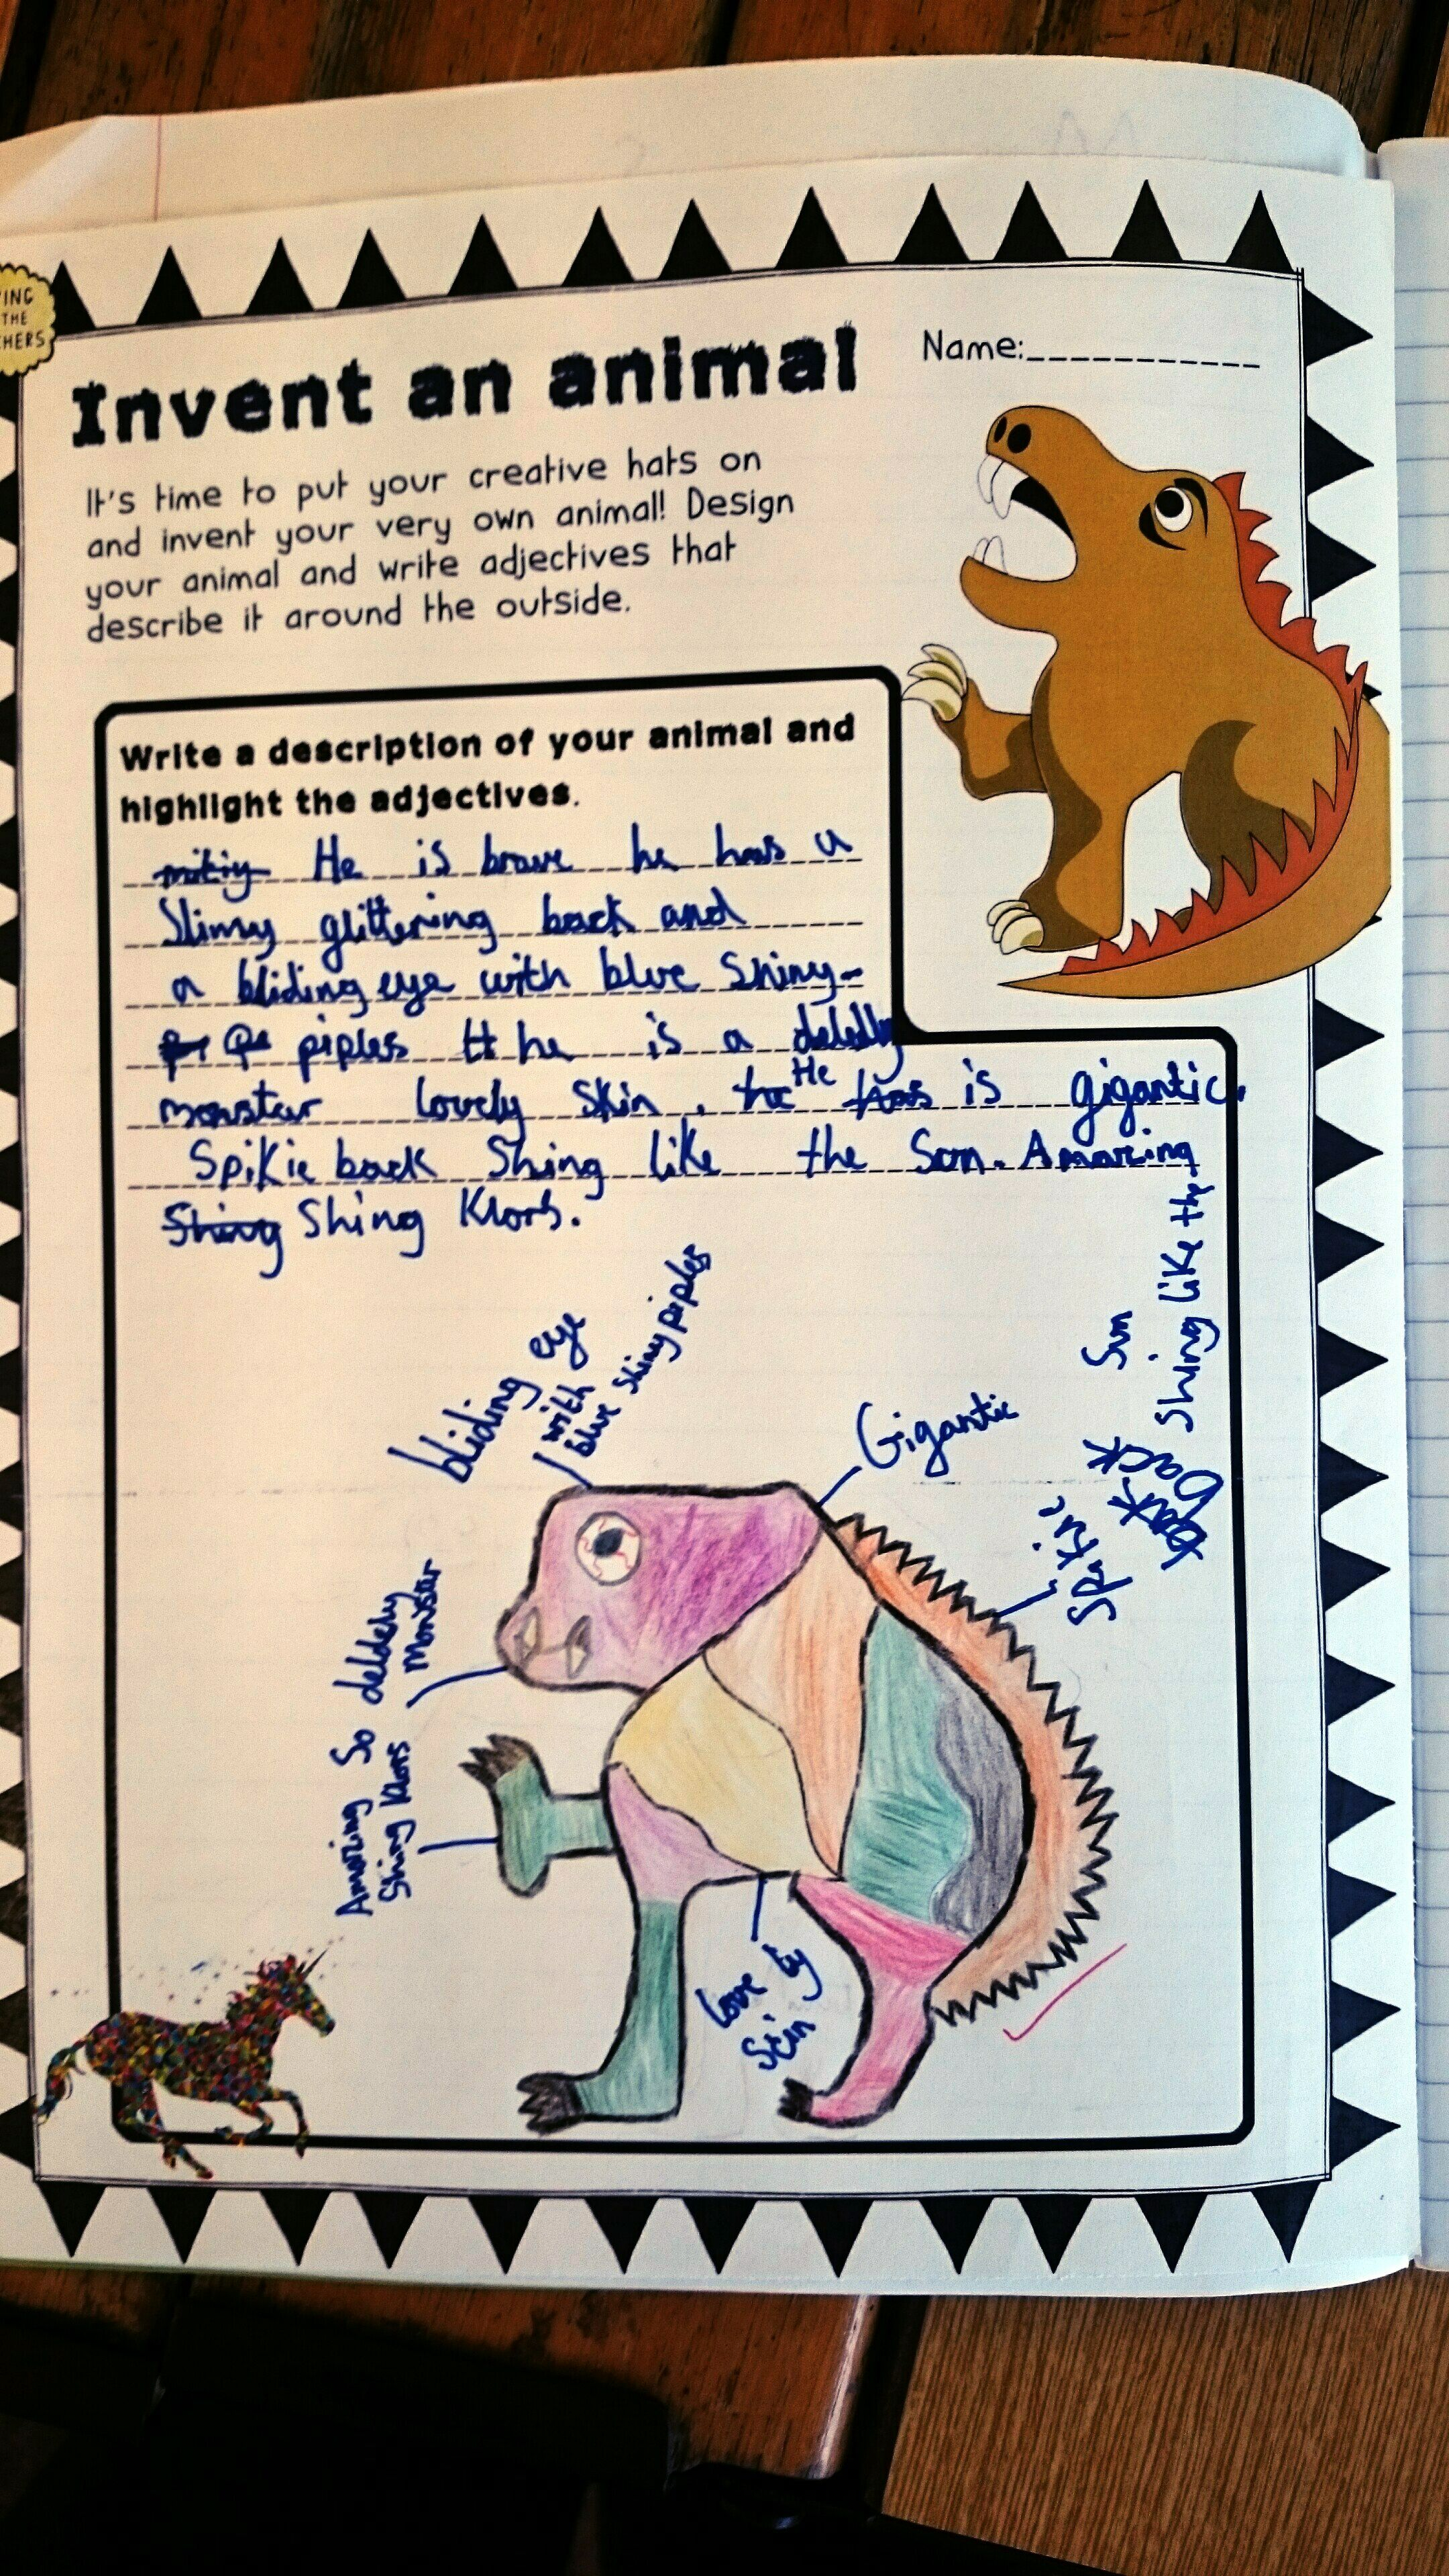 Animal Adjectives A Great Adjective Activity For Children To Start Using Adjectives This A Fantastic Exampl Adjective Worksheet Adjectives Elementary Writing [ 3840 x 2160 Pixel ]